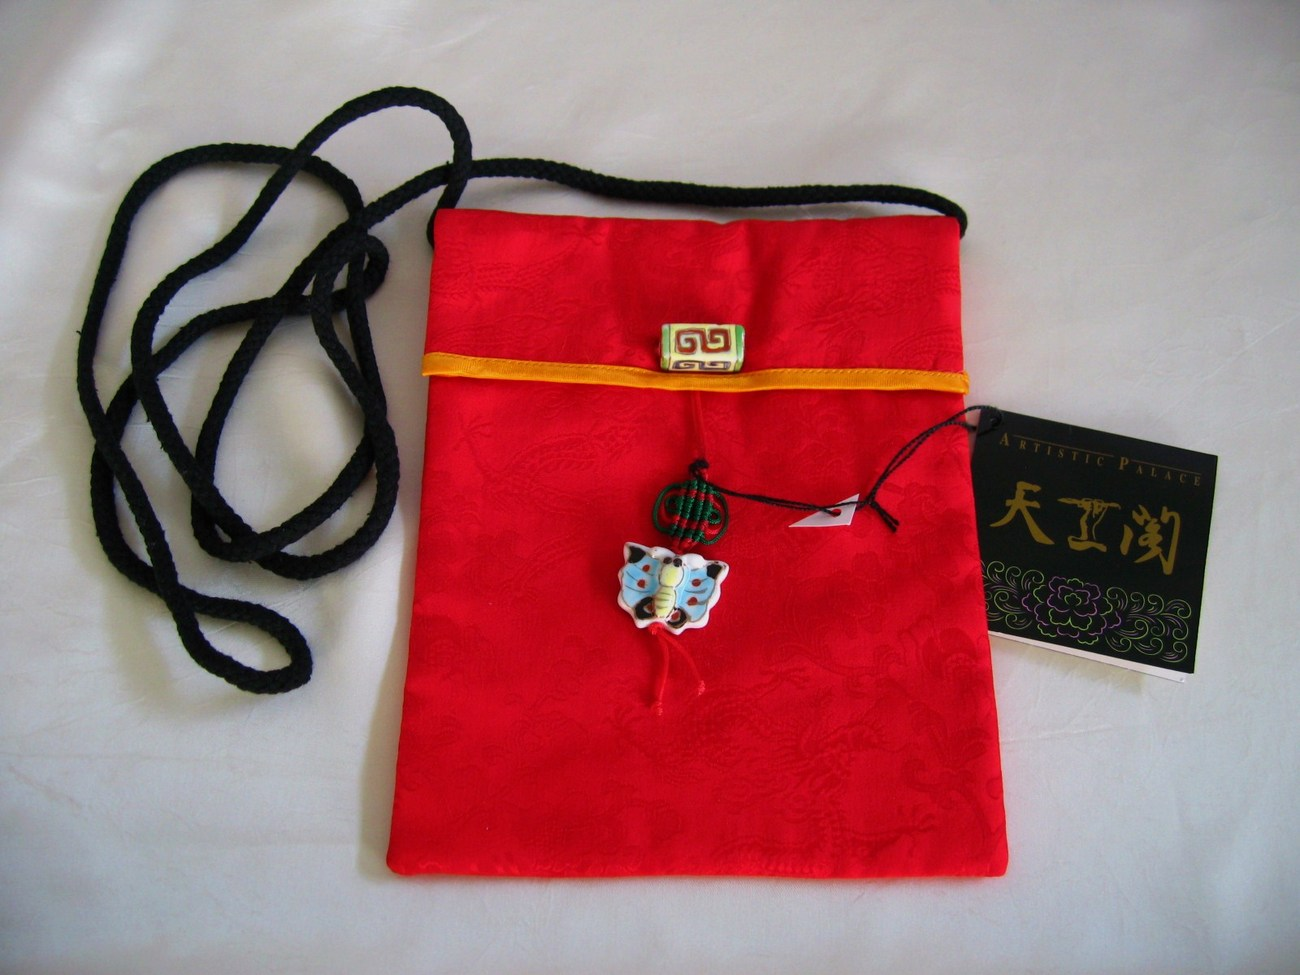 ELEGANT COLLECTIBLE Japanese art RED Embroidery Fine Silk handbag /strap purse